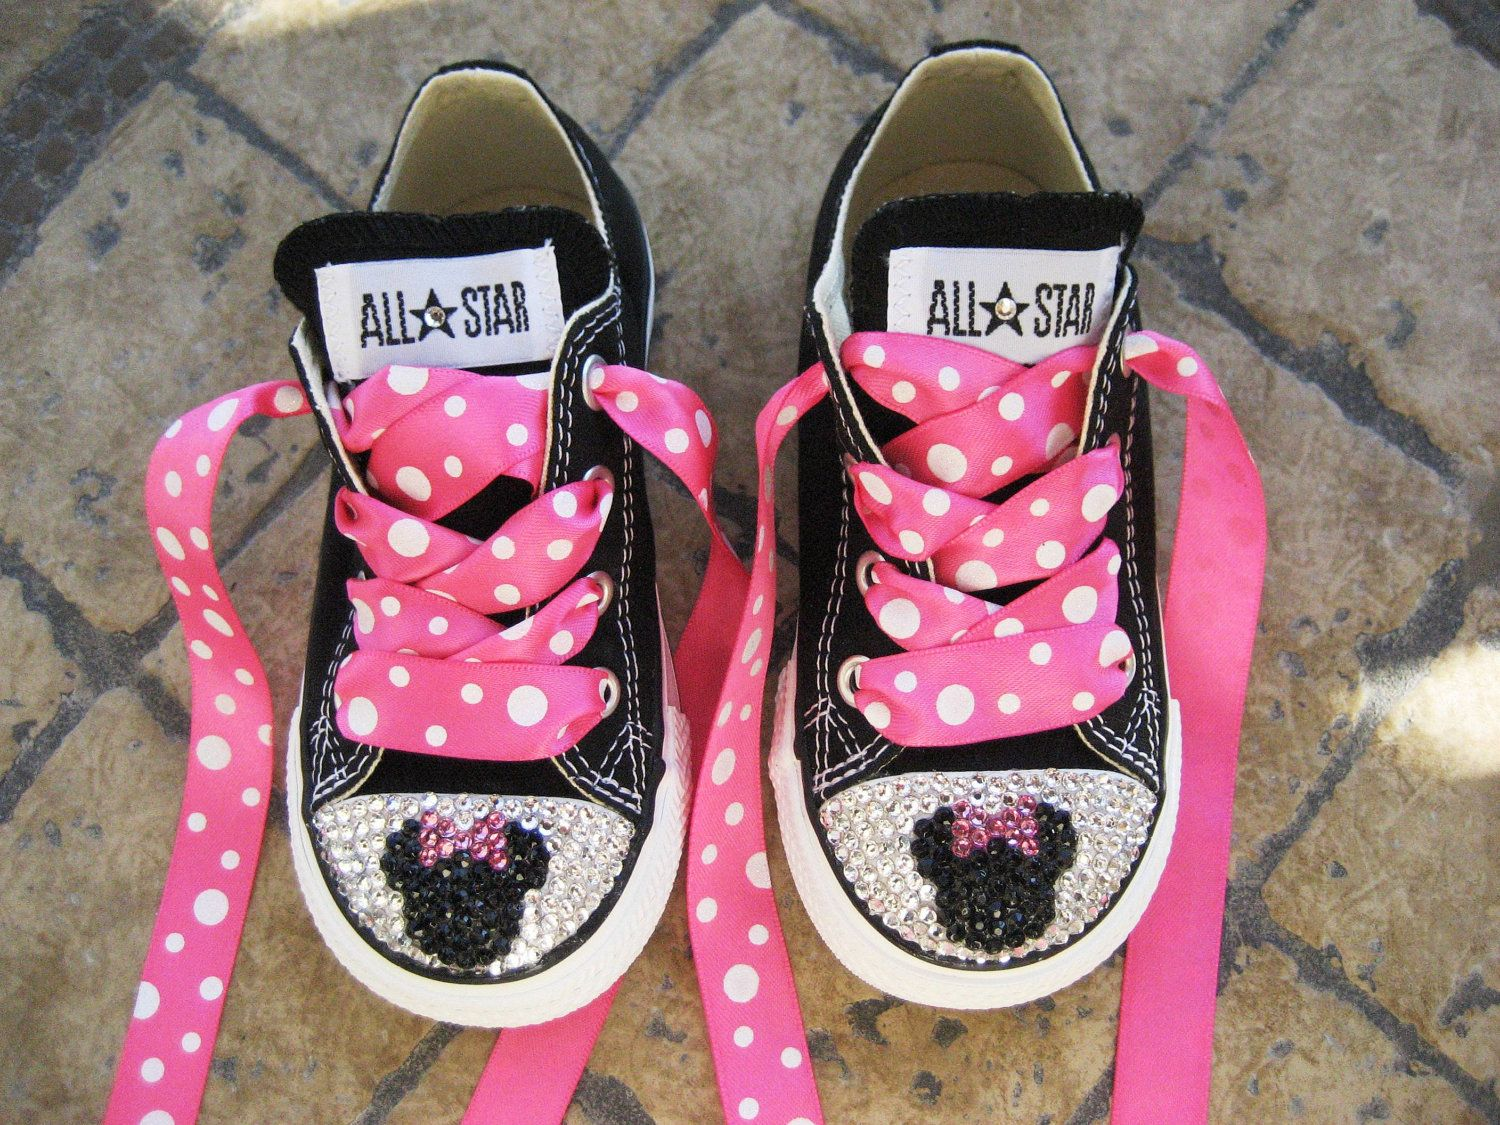 71bf9601b050 Converse Chuck Taylor All Star SWAROVSKI crystals BLING minnie mouse  inspired.